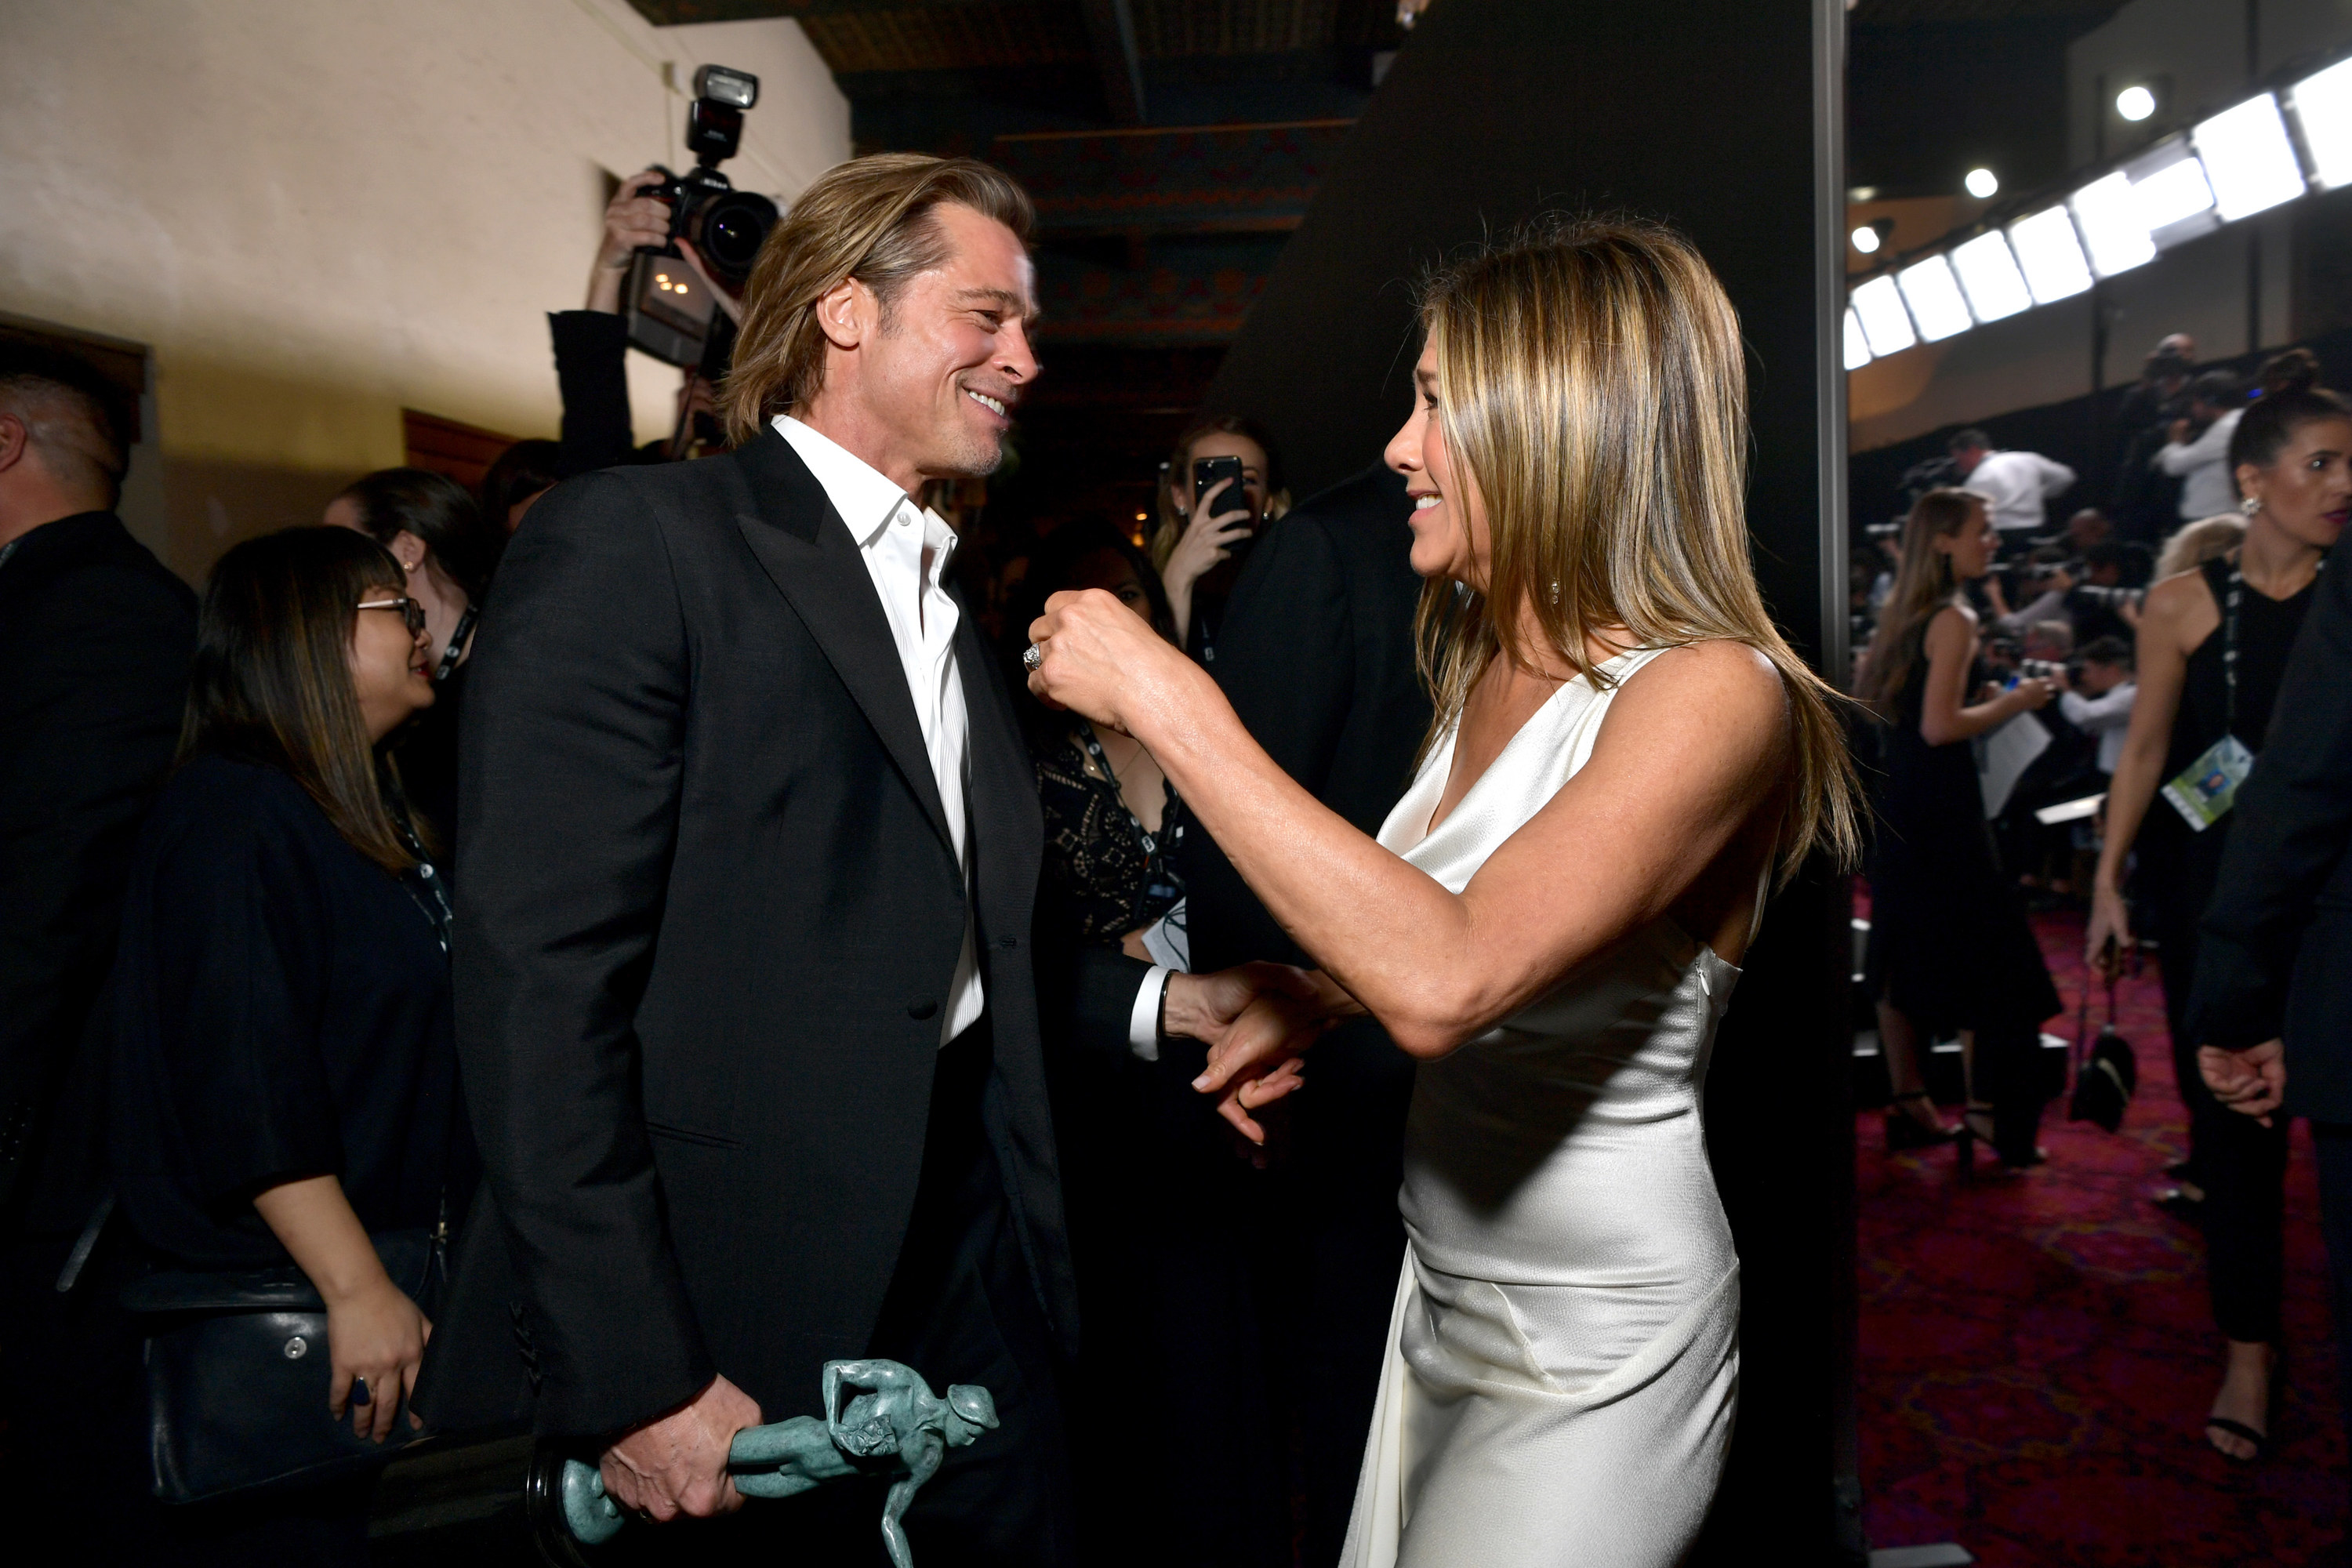 Brad and Jennifer greet each other at a recent event